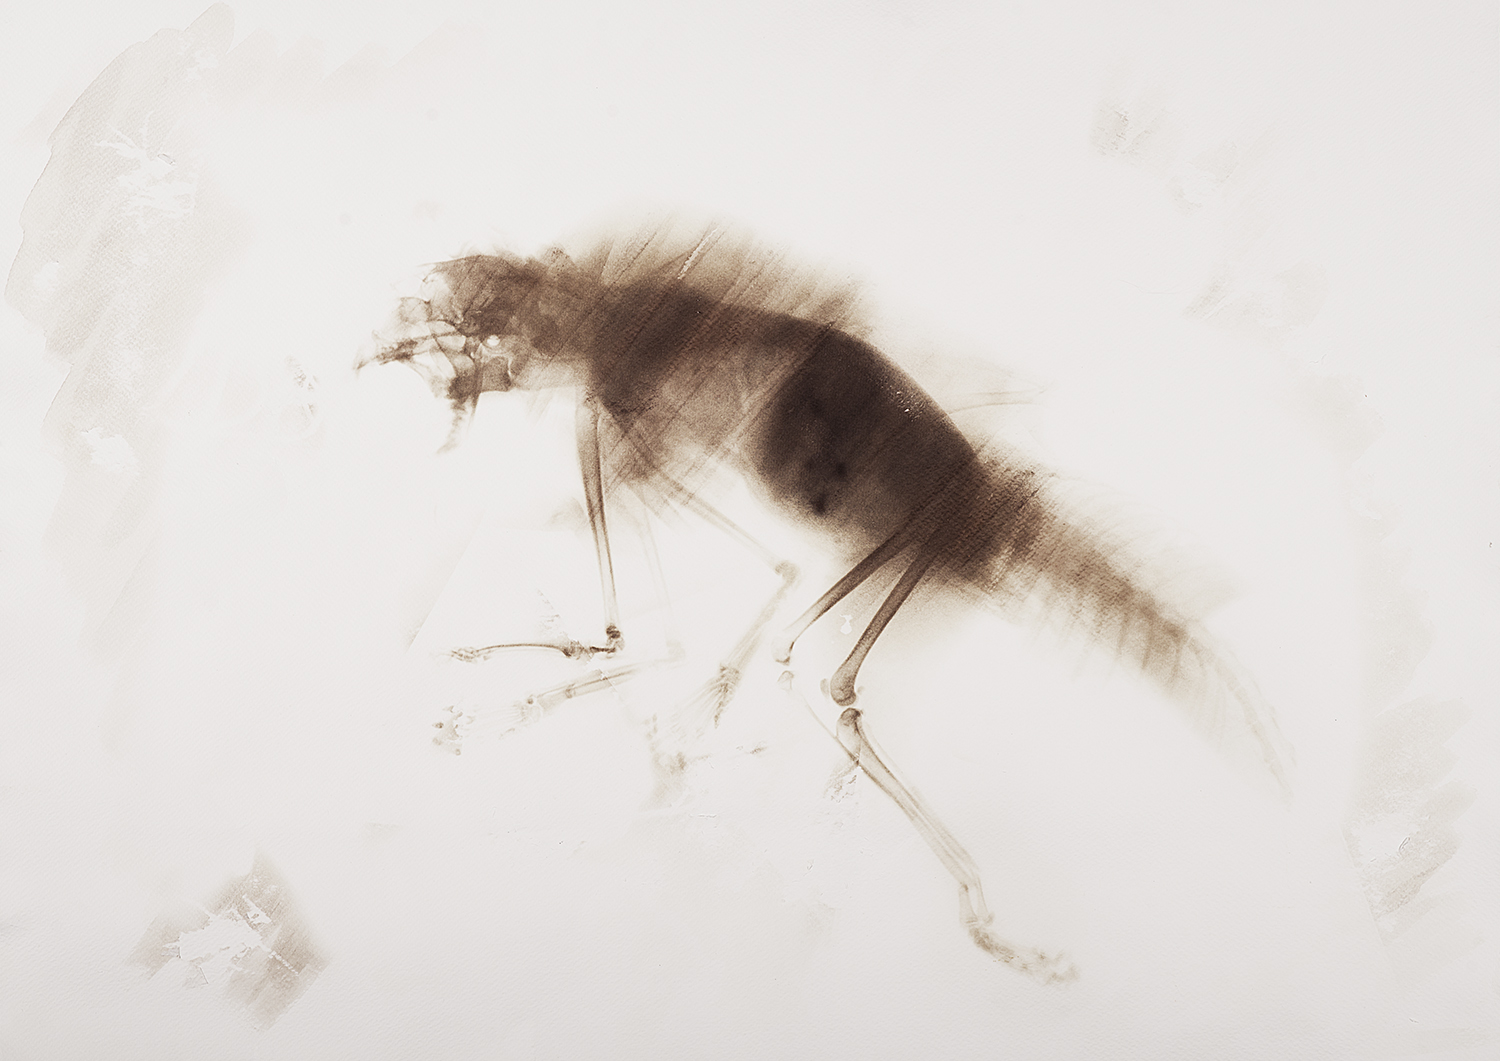 This lonely, carrion-eating animal lived on the prairie. While the body was furry, its legs and its chap were hairless, so that it could get rid of the blood and pieces of meat easily in order to clean itself and to avoid infections. The wounds and scars all over its bones give evidence of the fact that its lifestyle must have led to several fights with other species over the carcasses. The thick fur was functioning as a useful protective layer in the battles. The two extra front legs between the front limbs were used for carrying rather than walking.